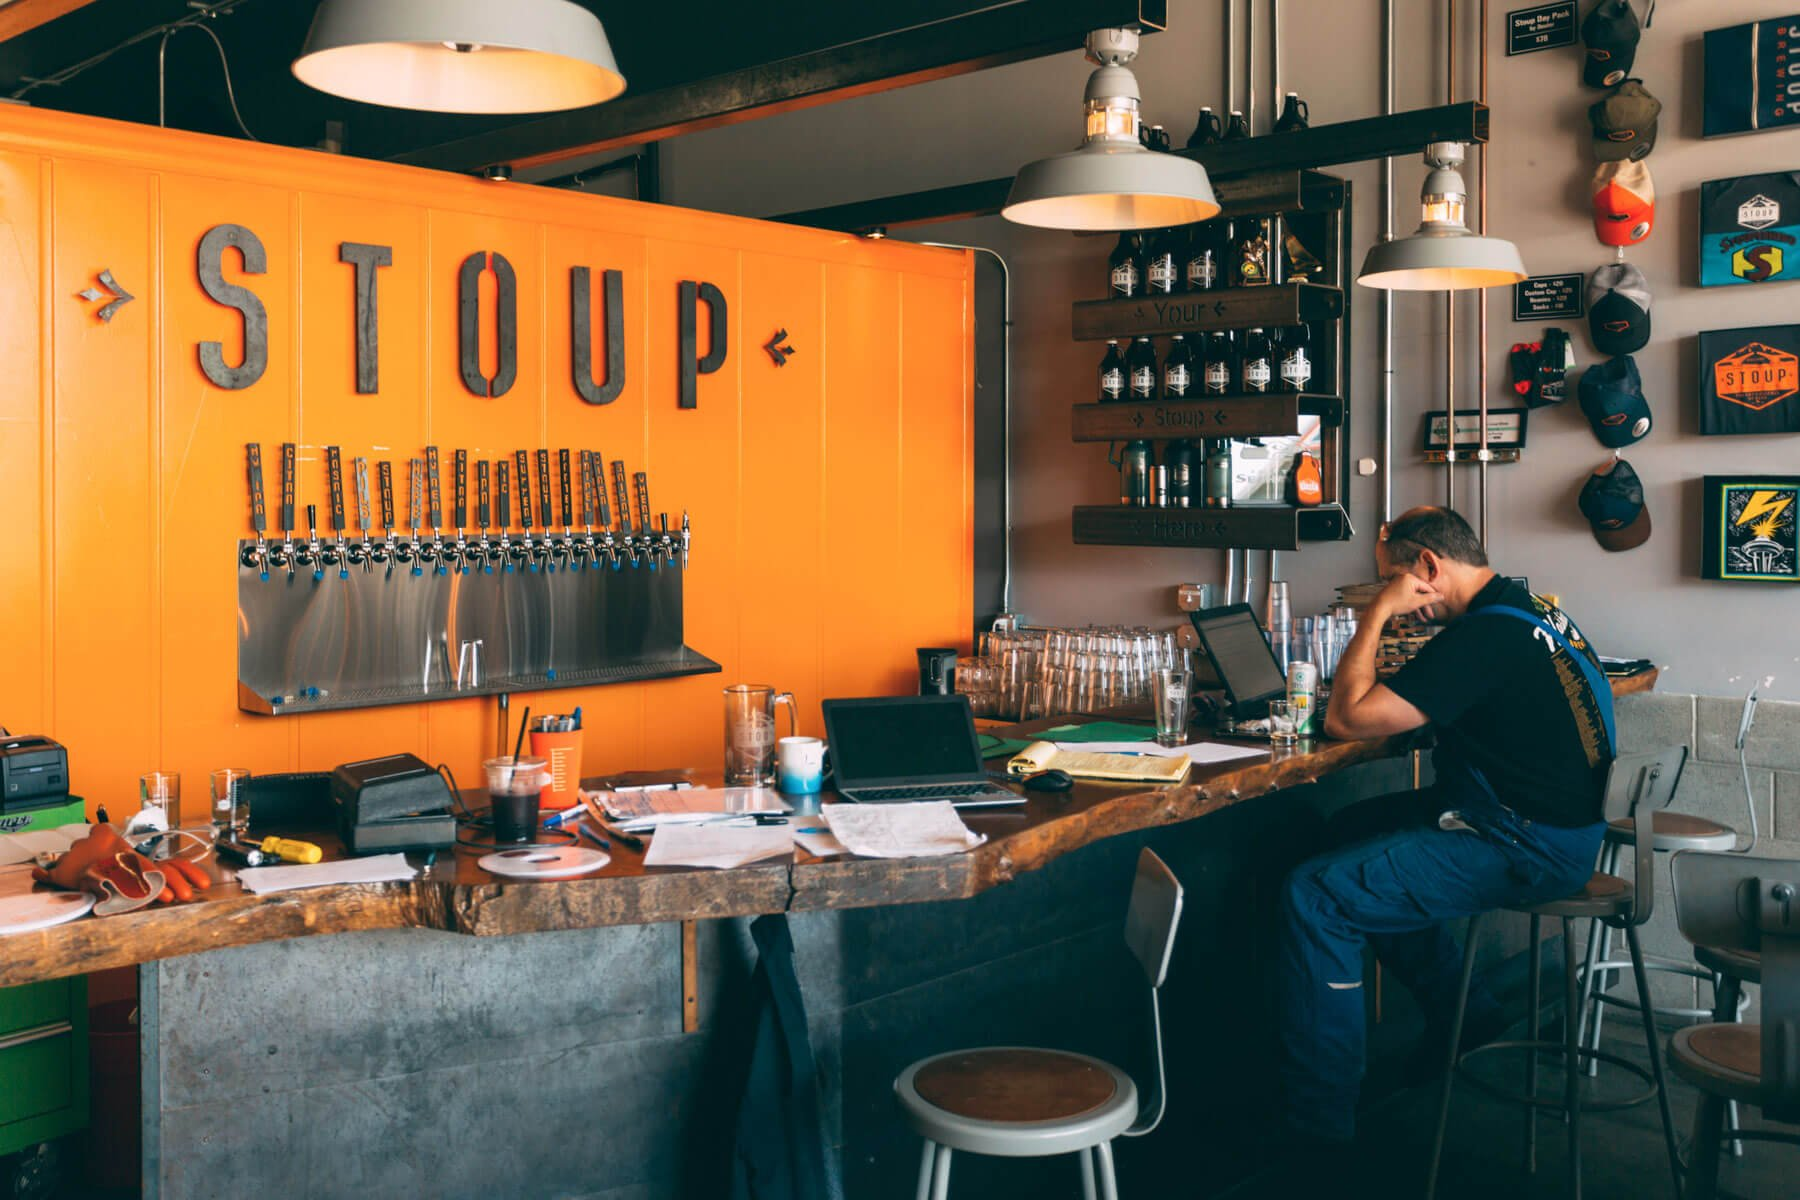 Inside the taproom at Stoup Brewing in the Ballard District of Seattle, Washington